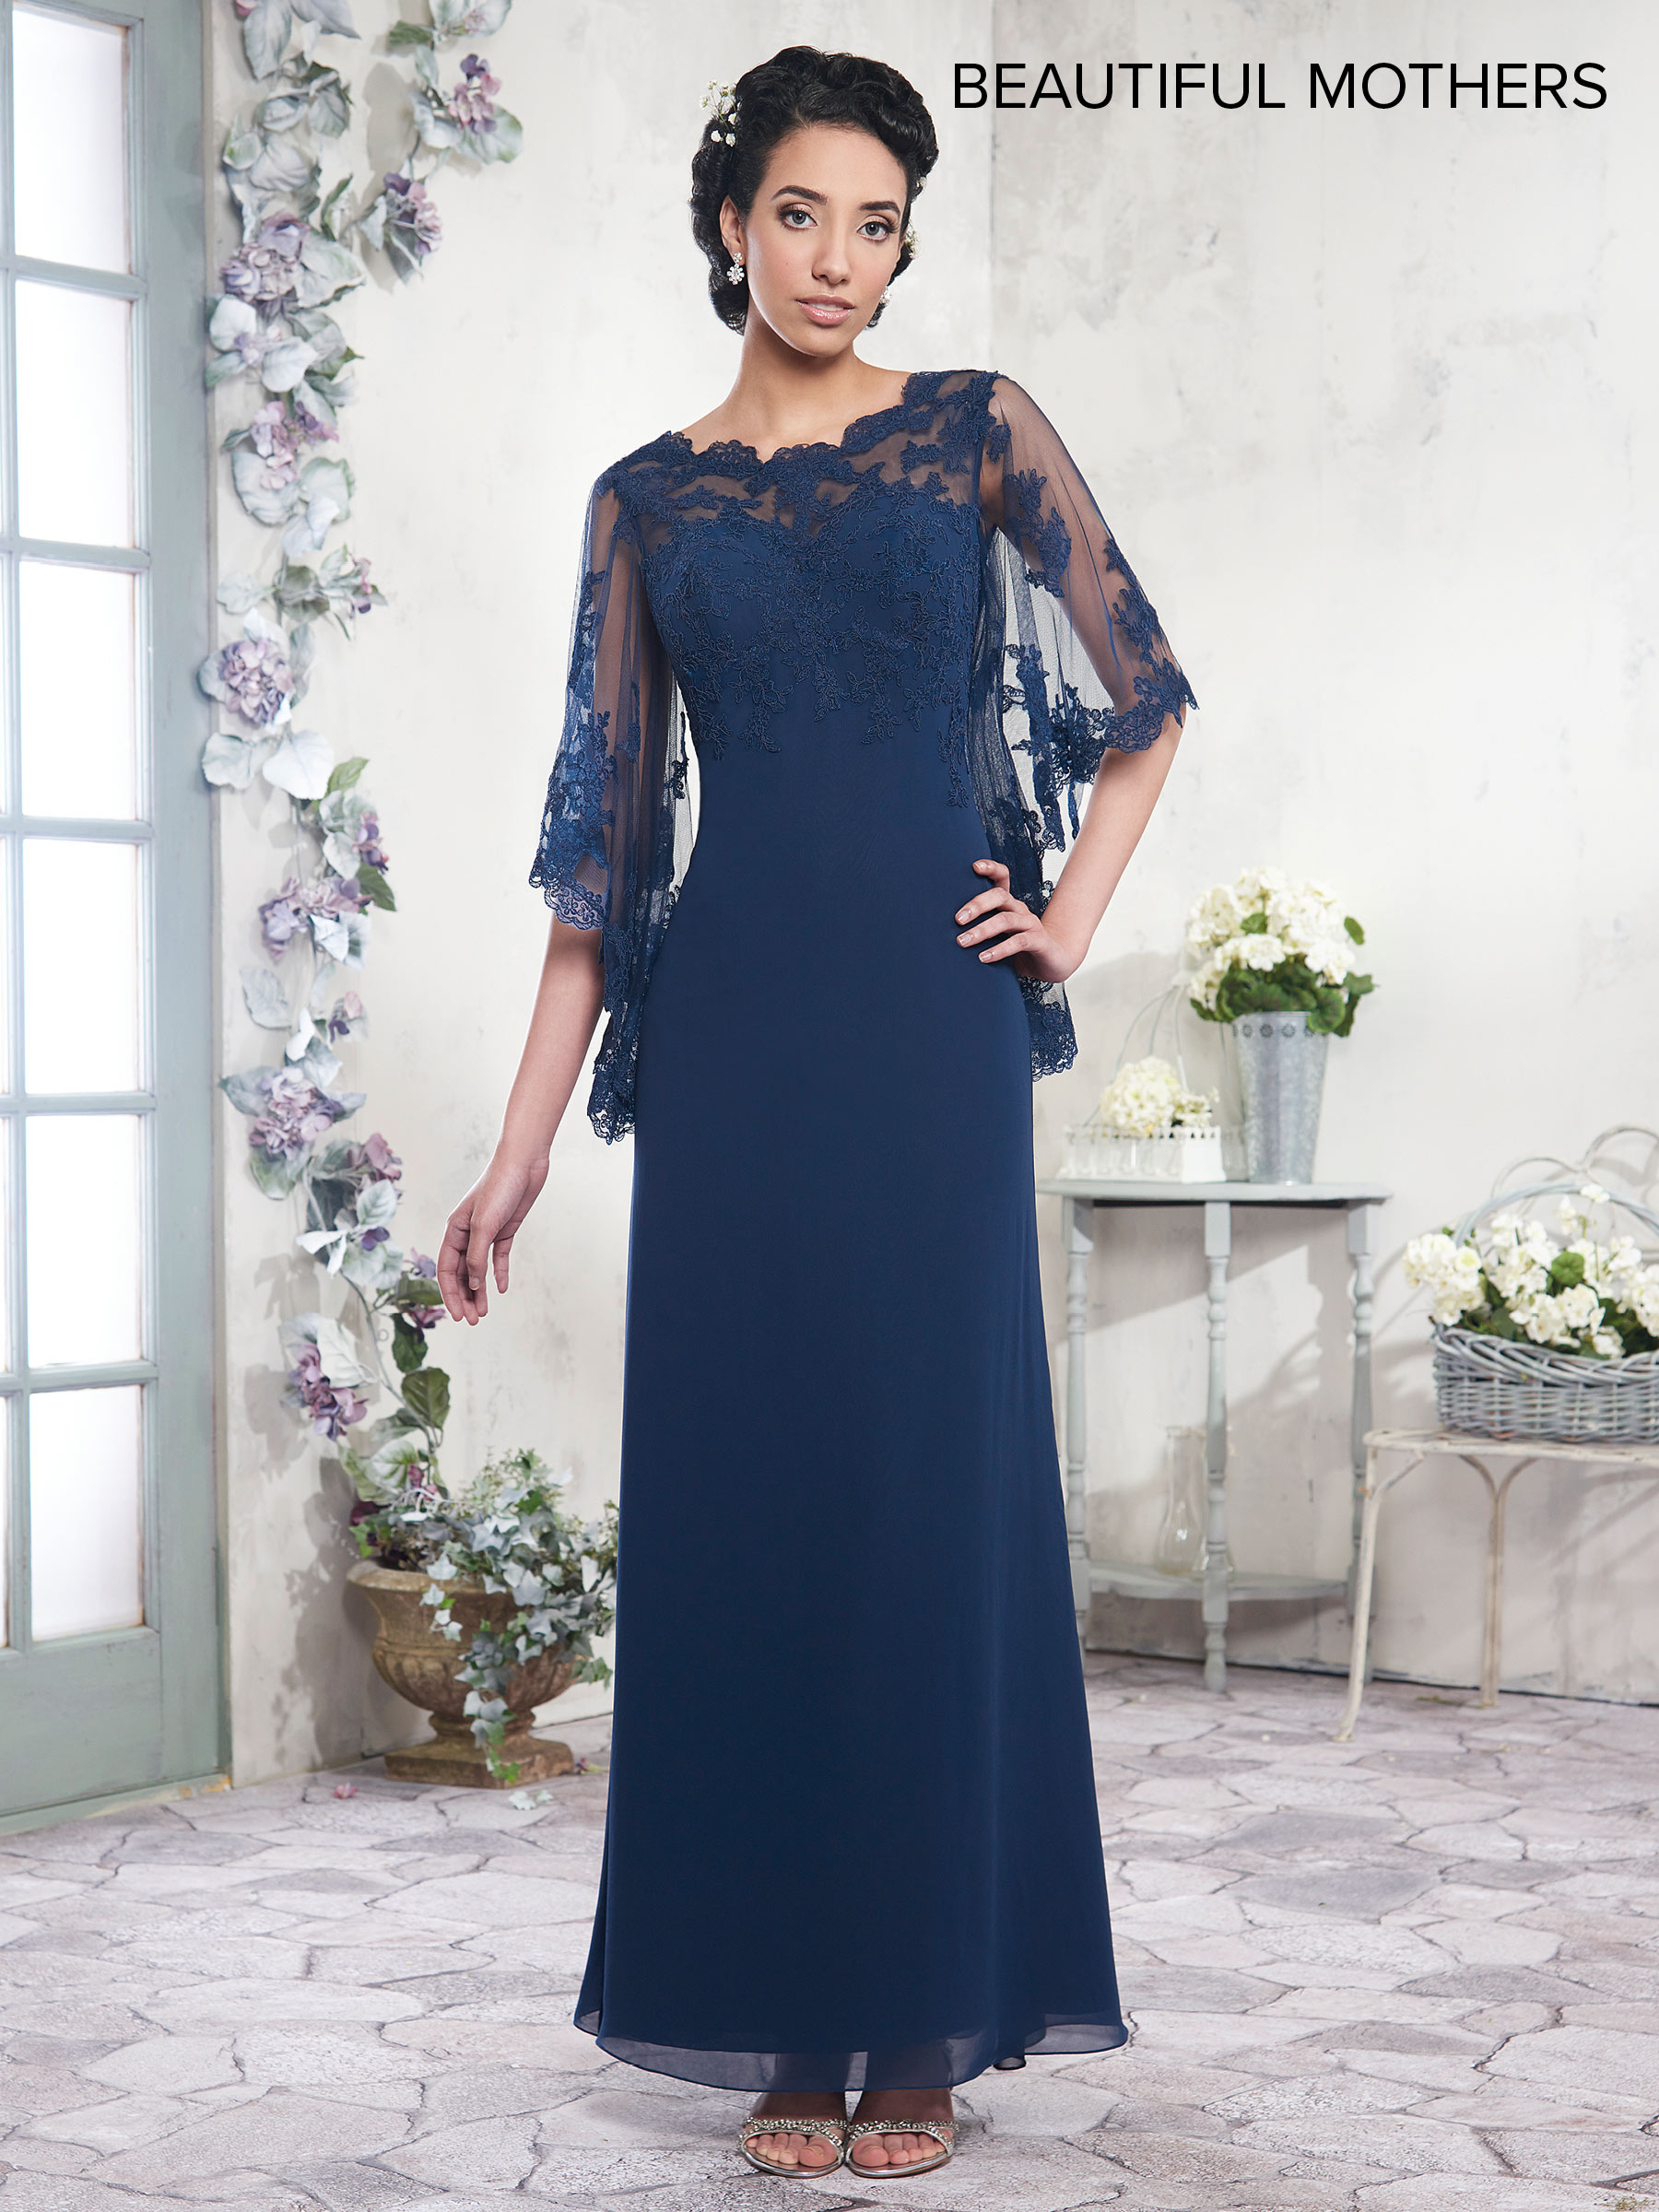 Mother Of The Bride Dresses | Beautiful Mothers | Style - MB8001